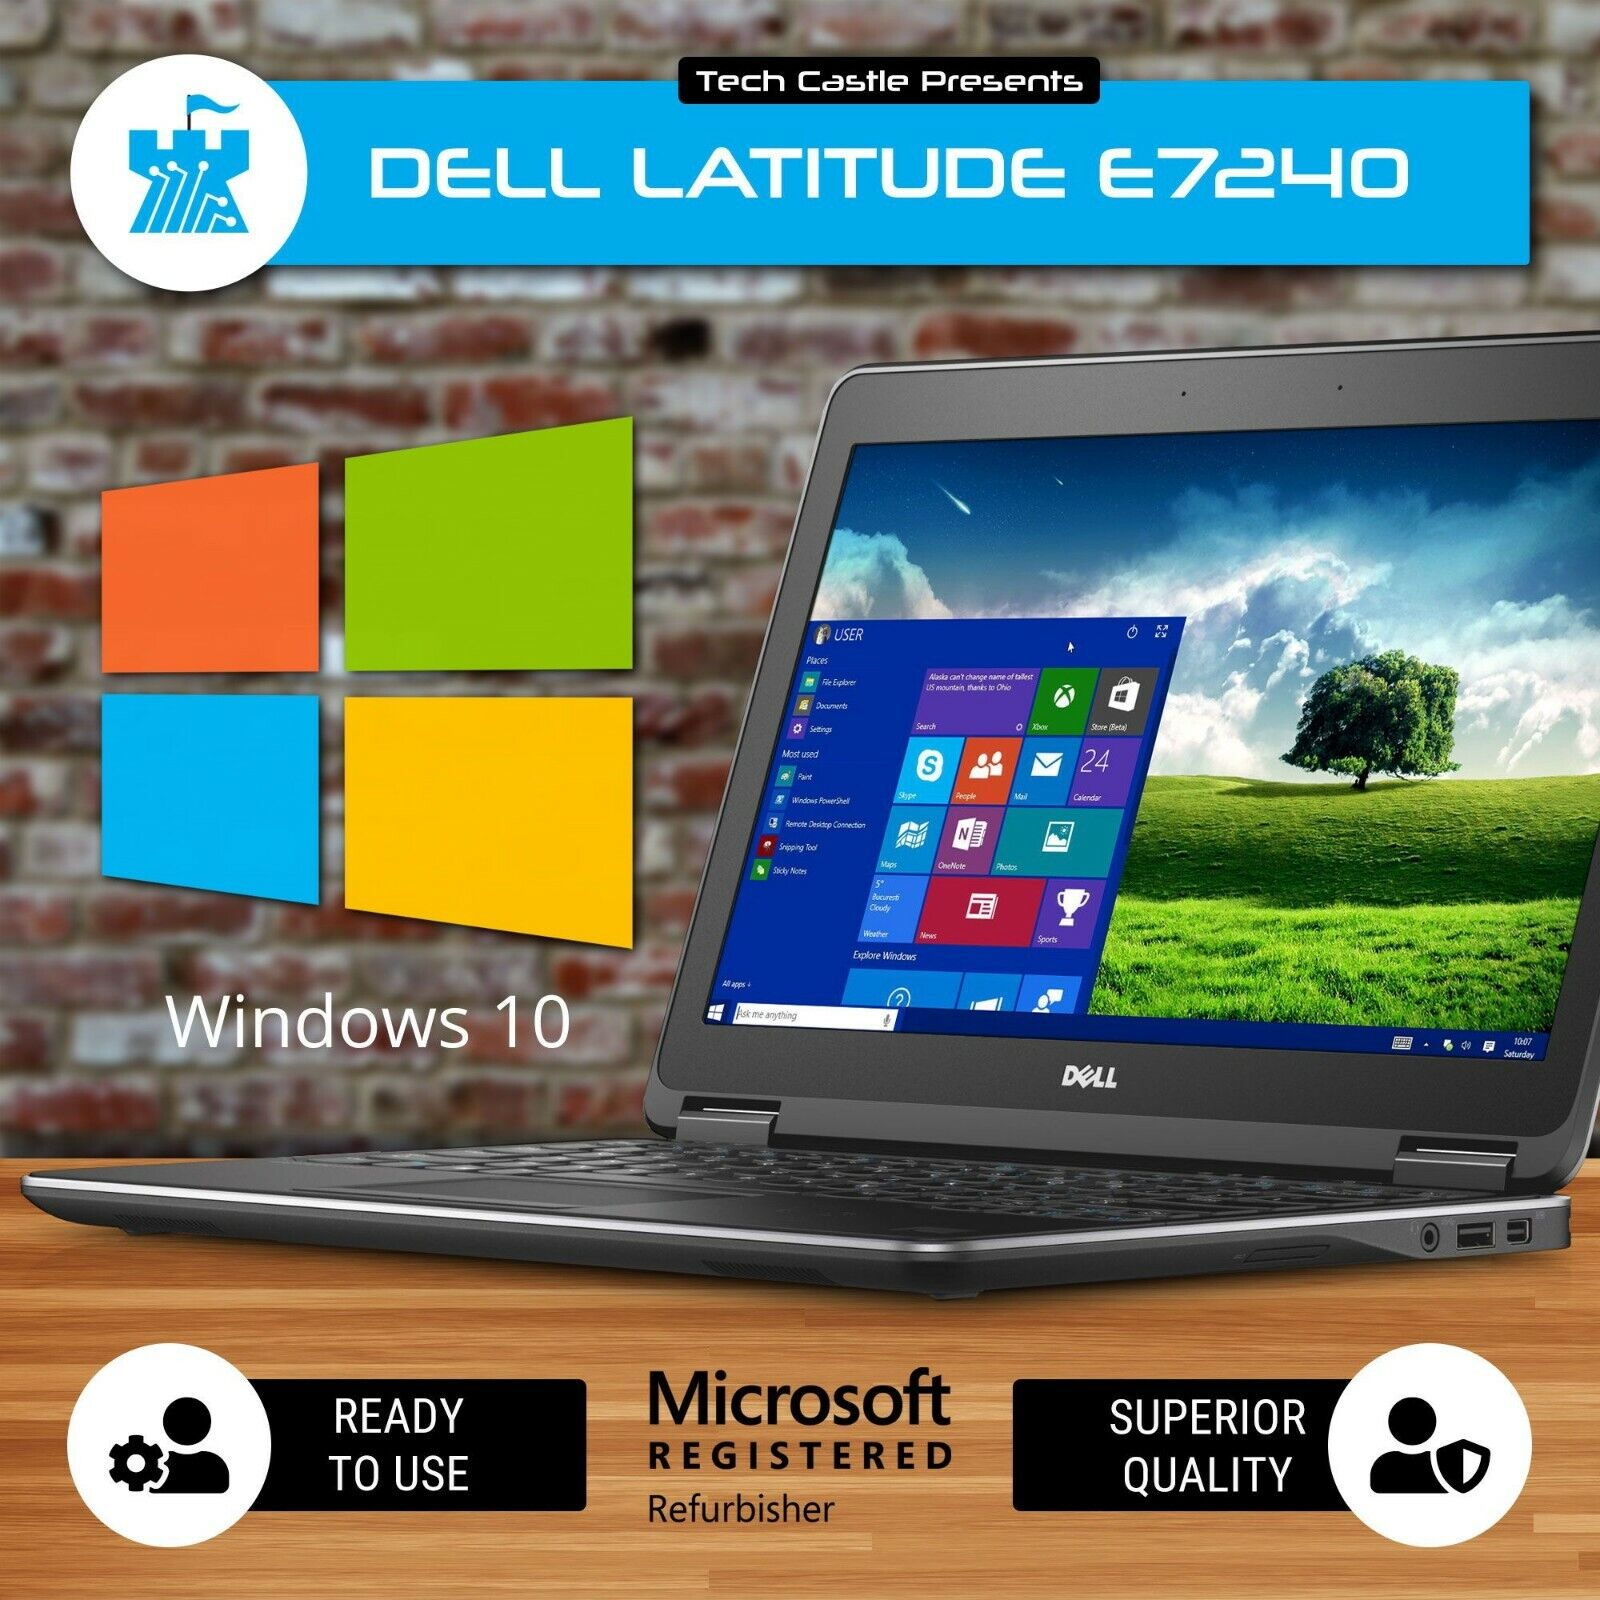 "Laptop Windows - Dell Laptop Computer Intel i5 Windows 10 8GB RAM Fast SSD HD WEBCAM 12.5"" LCD PC"